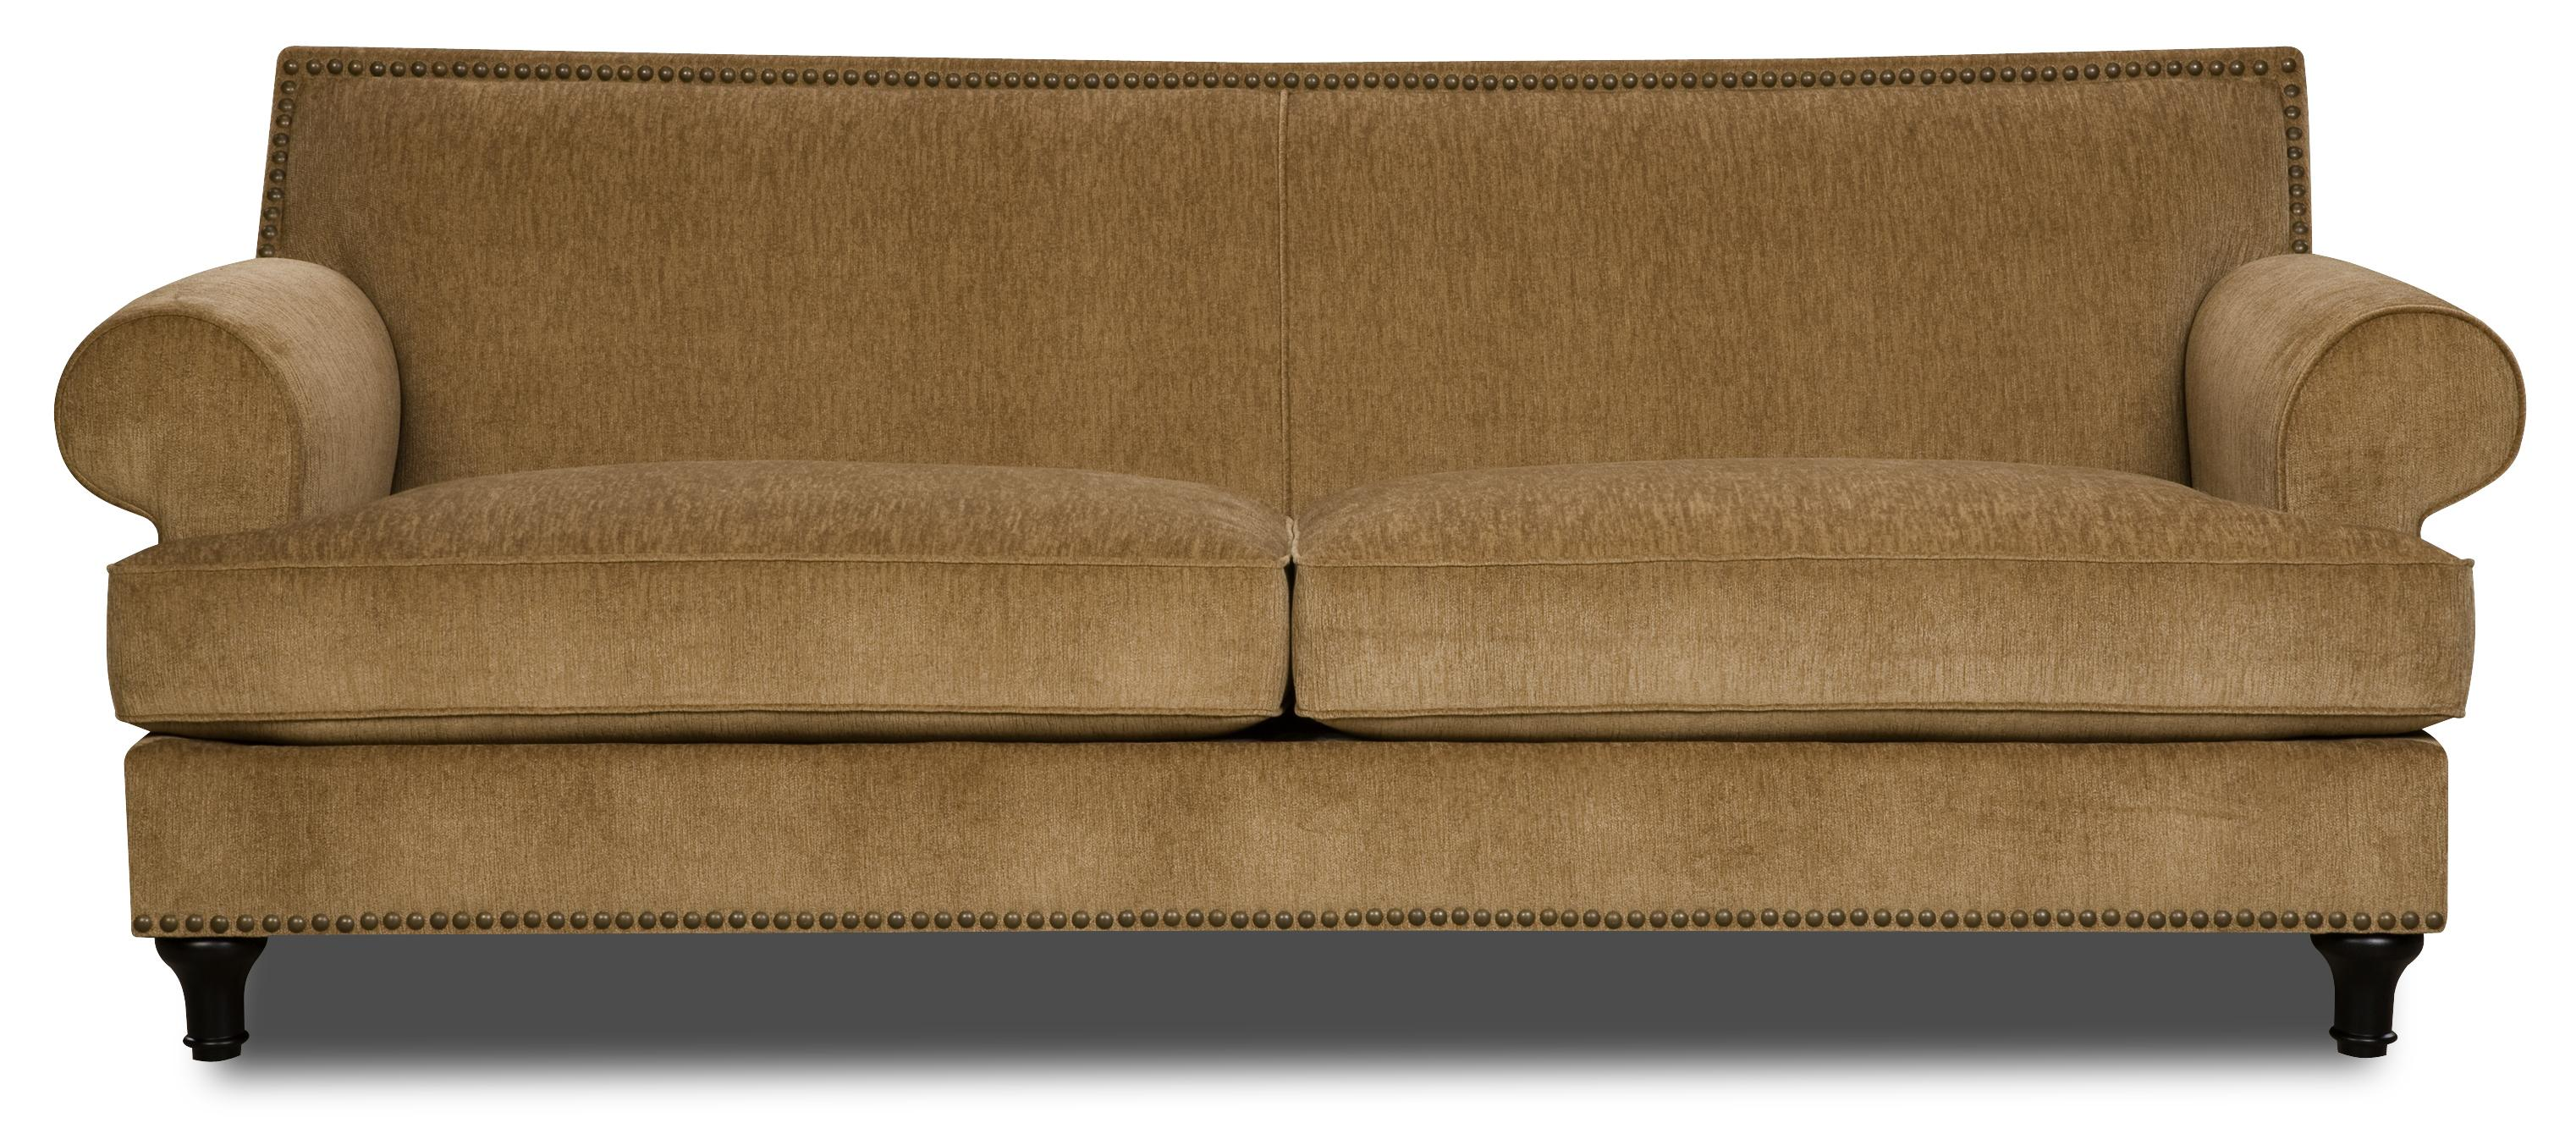 Bauhaus 129K Traditional Sofa with Tight Seat Back and Rolled Arms